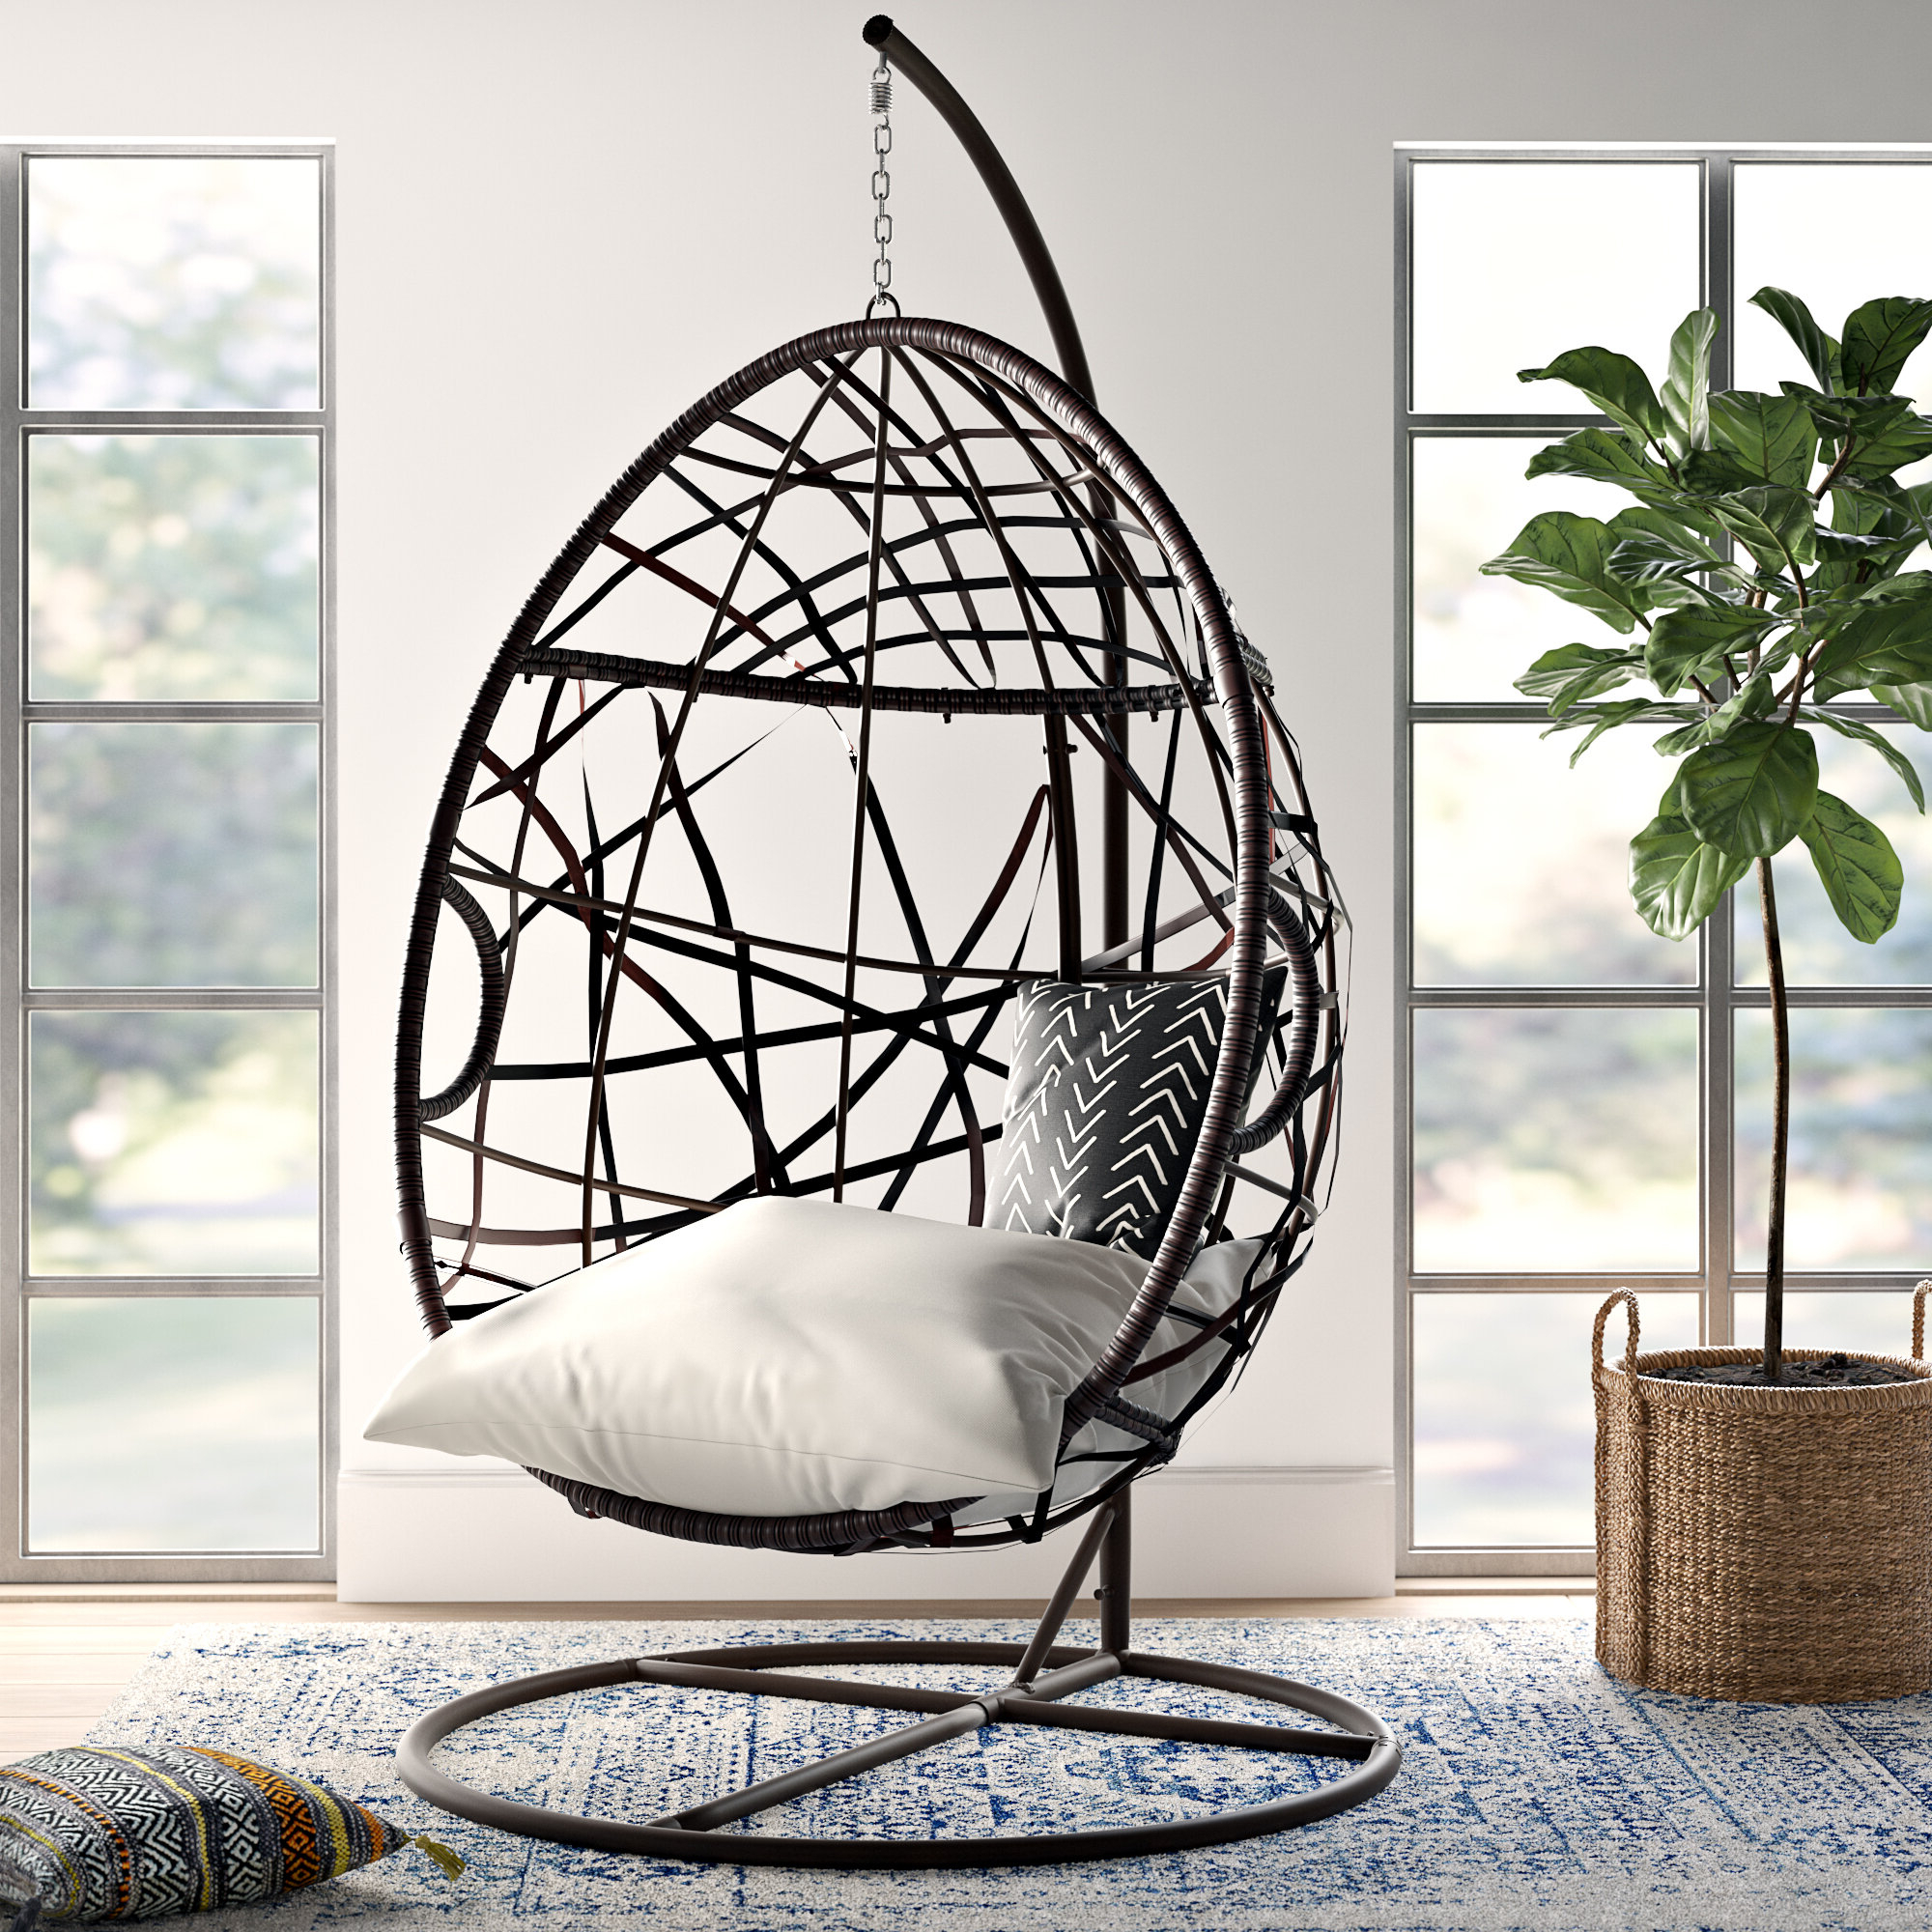 2020 Mistana Anner Tear Drop Swing Chair With Stand & Reviews In Outdoor Wicker Plastic Tear Porch Swings With Stand (View 11 of 30)